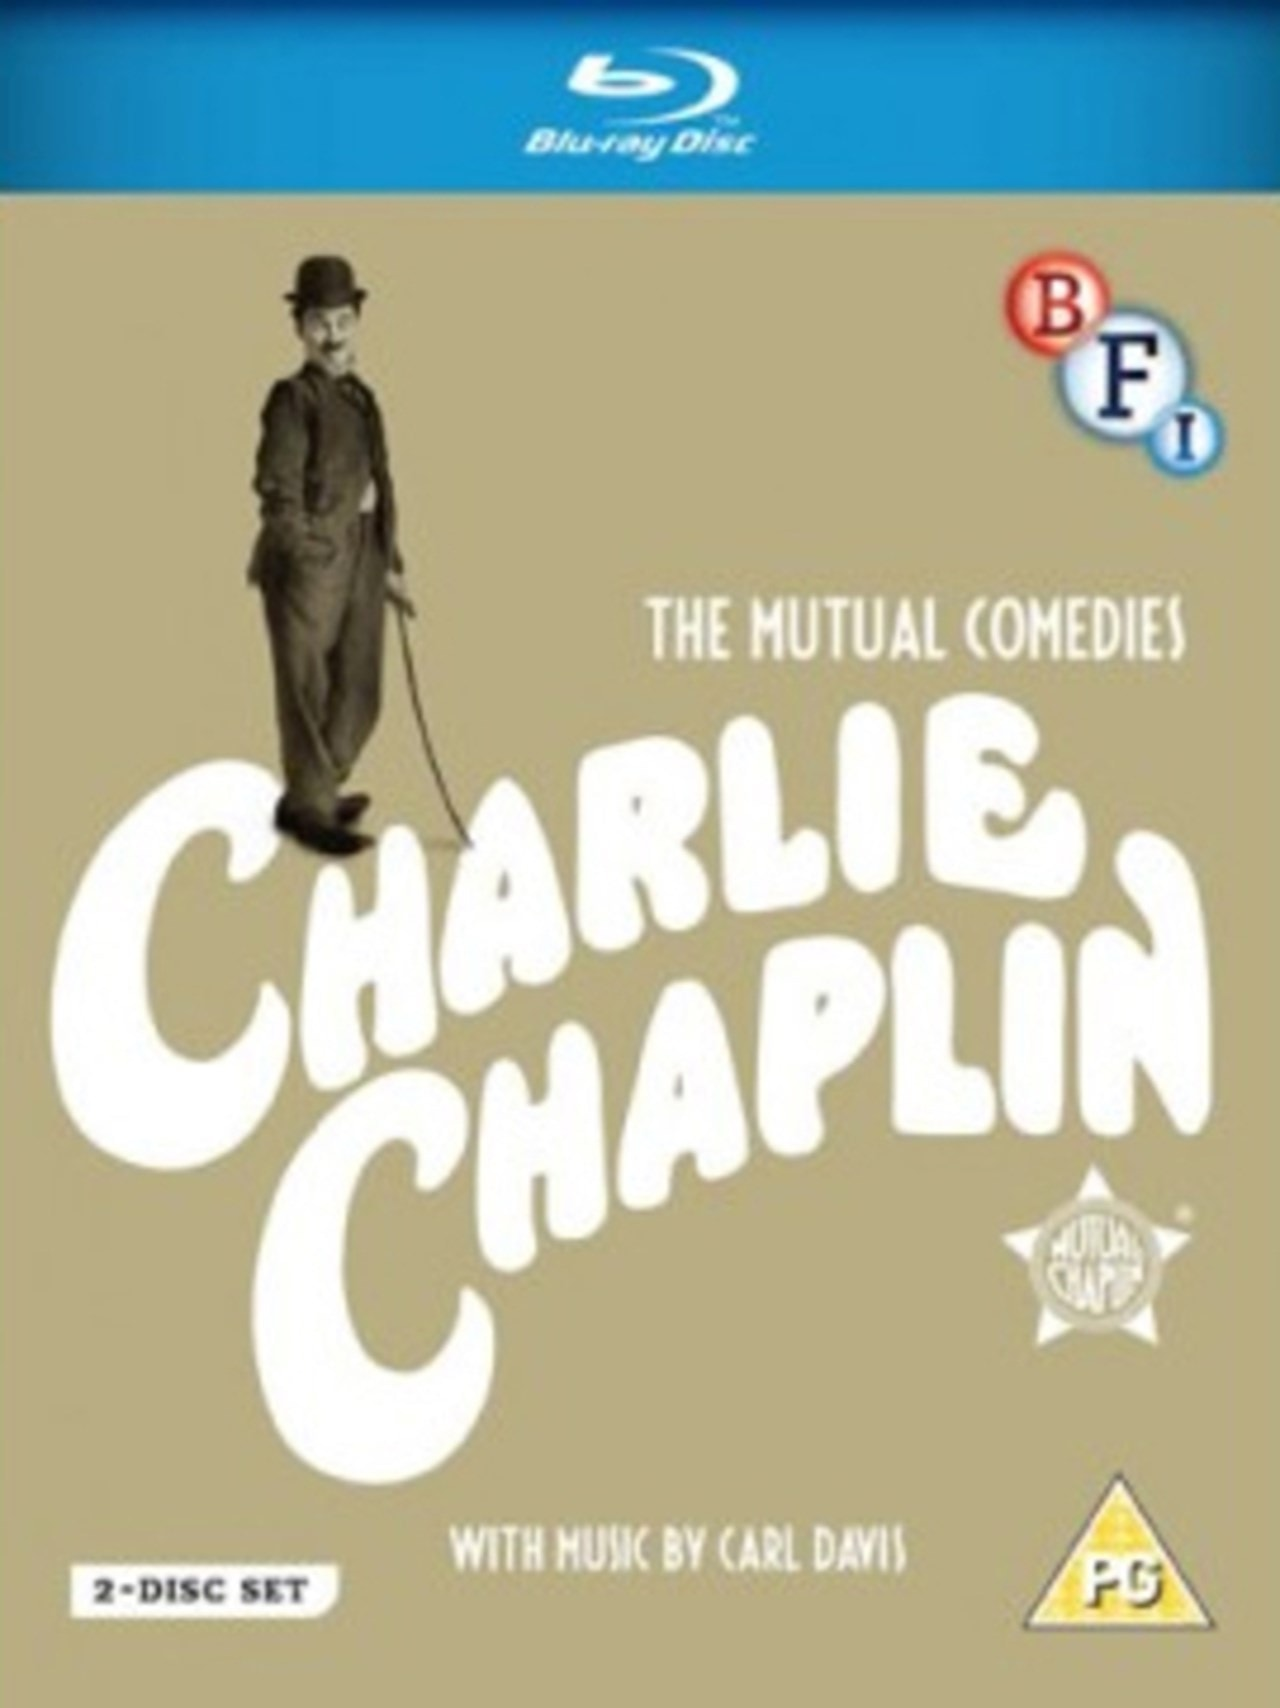 Charlie Chaplin: The Mutual Comedies - 1